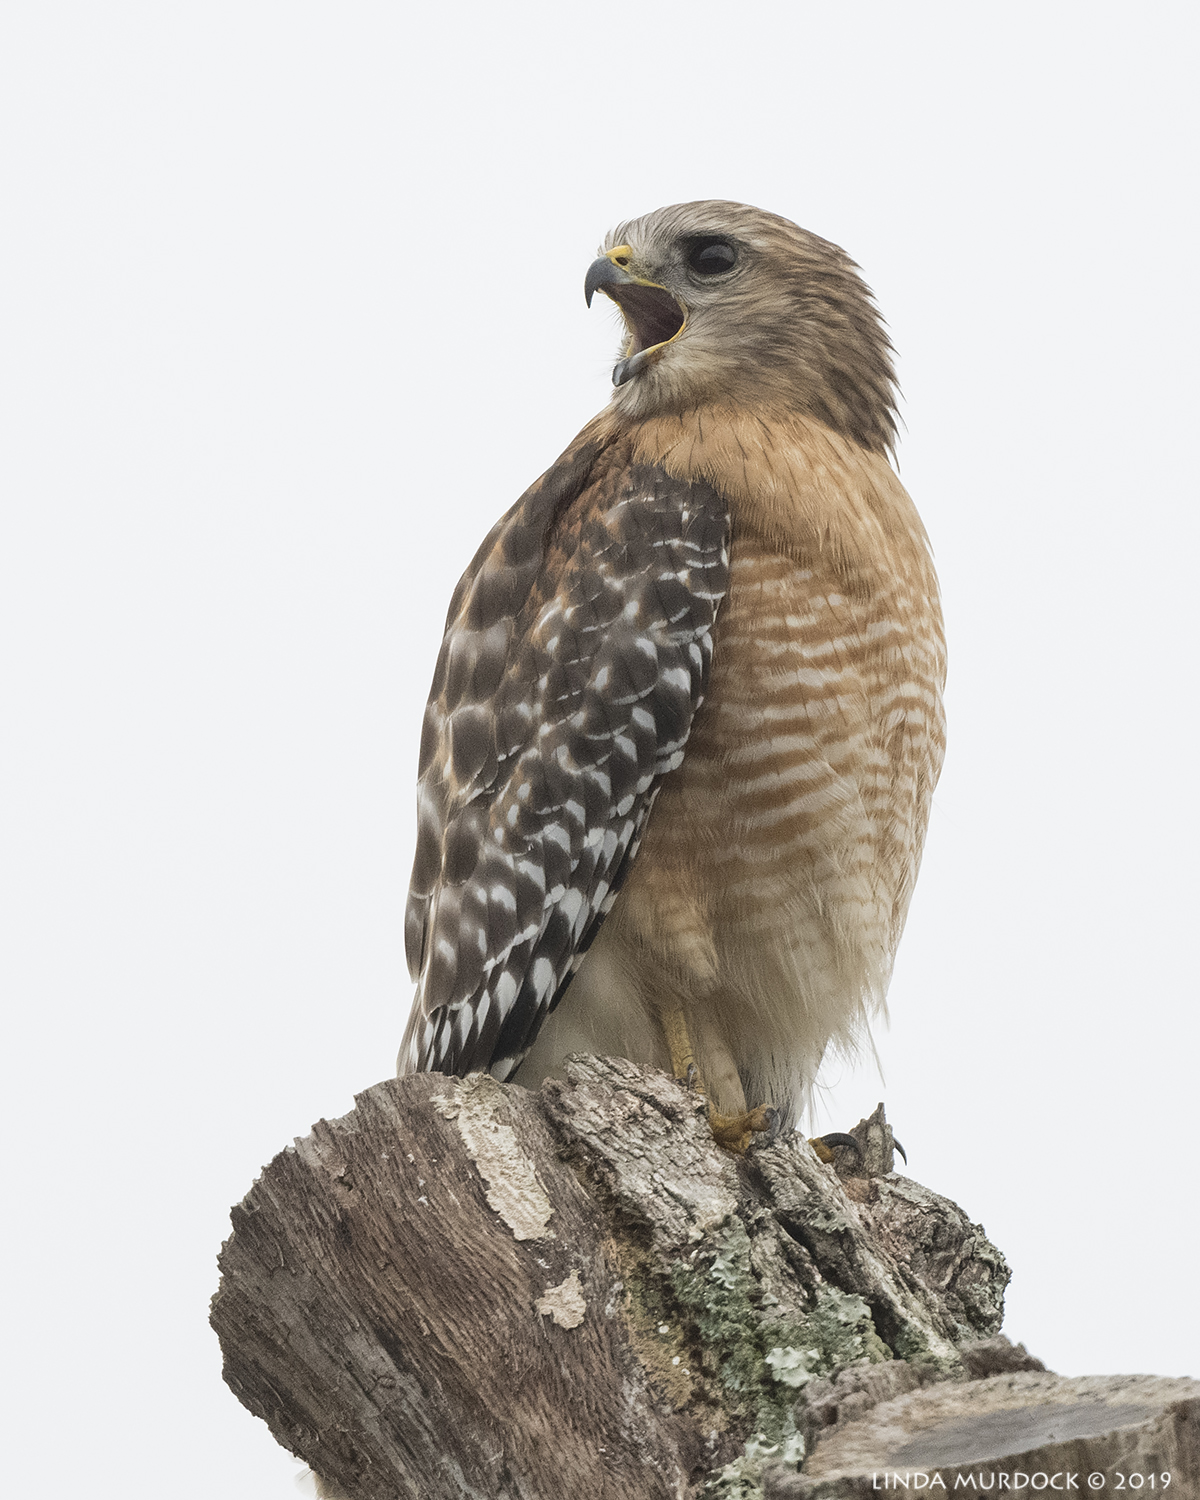 Red-shouldered Hawk calling for his mate? Nikon D850 with Nikkor 500 f/5.6 PF VR with Nikon 1.4x TC ~ 1/1600 sec f/8.0 ISO 1600; hand-held